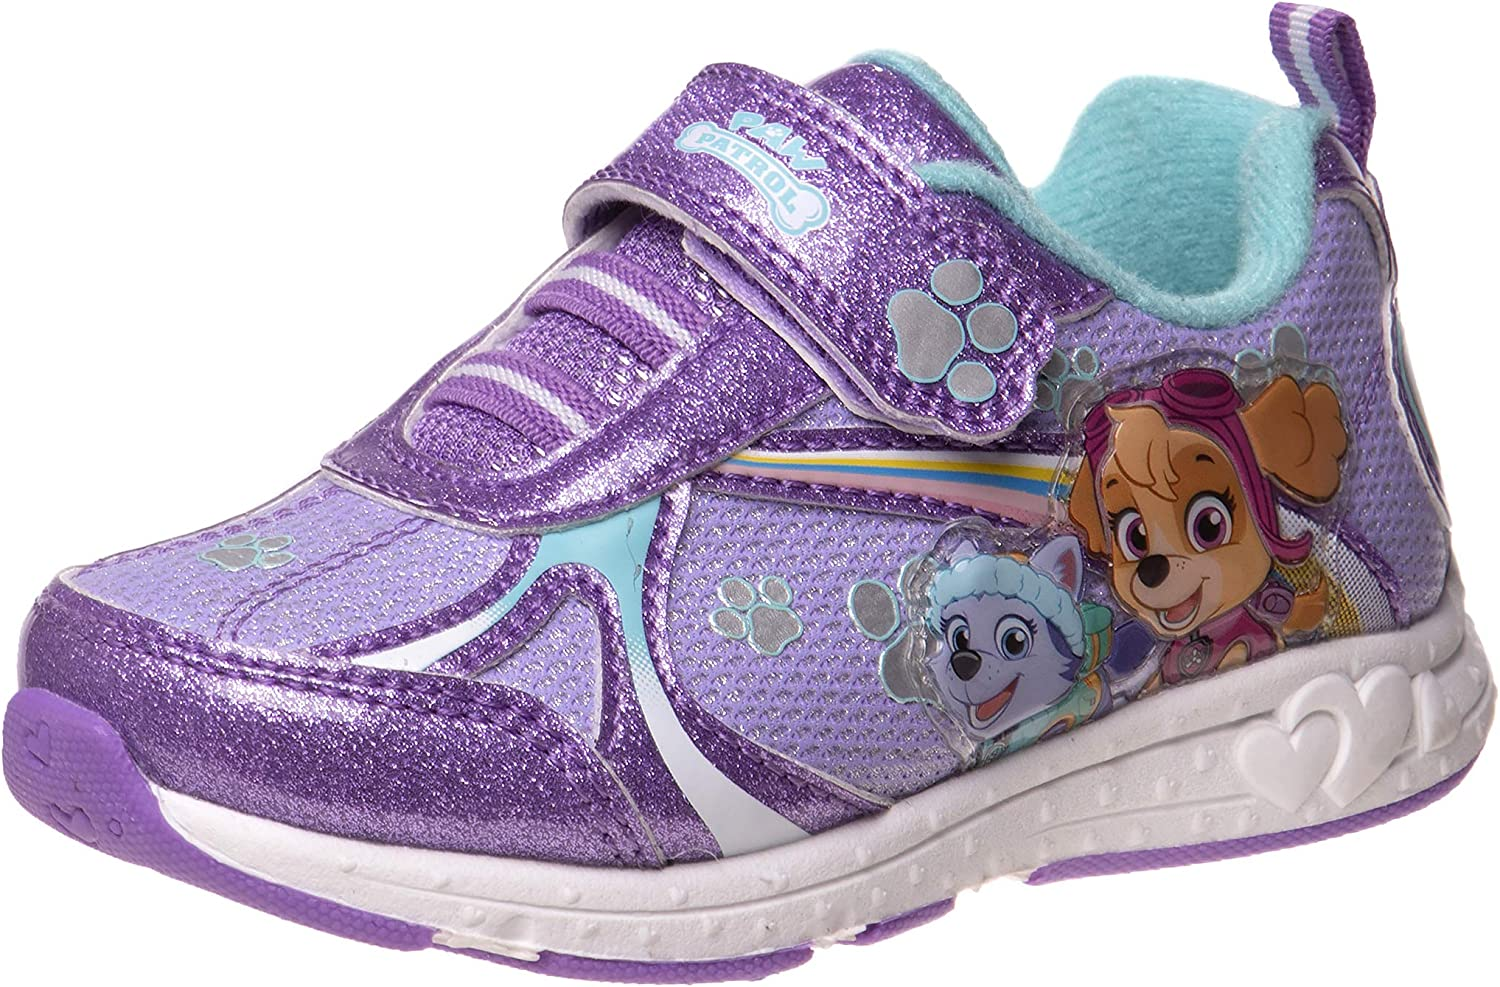 | Nickelodeon Girls' Paw Patrol Sneakers - Laceless LED Light Up Running Shoes (Toddler/Little Kid) | Sneakers